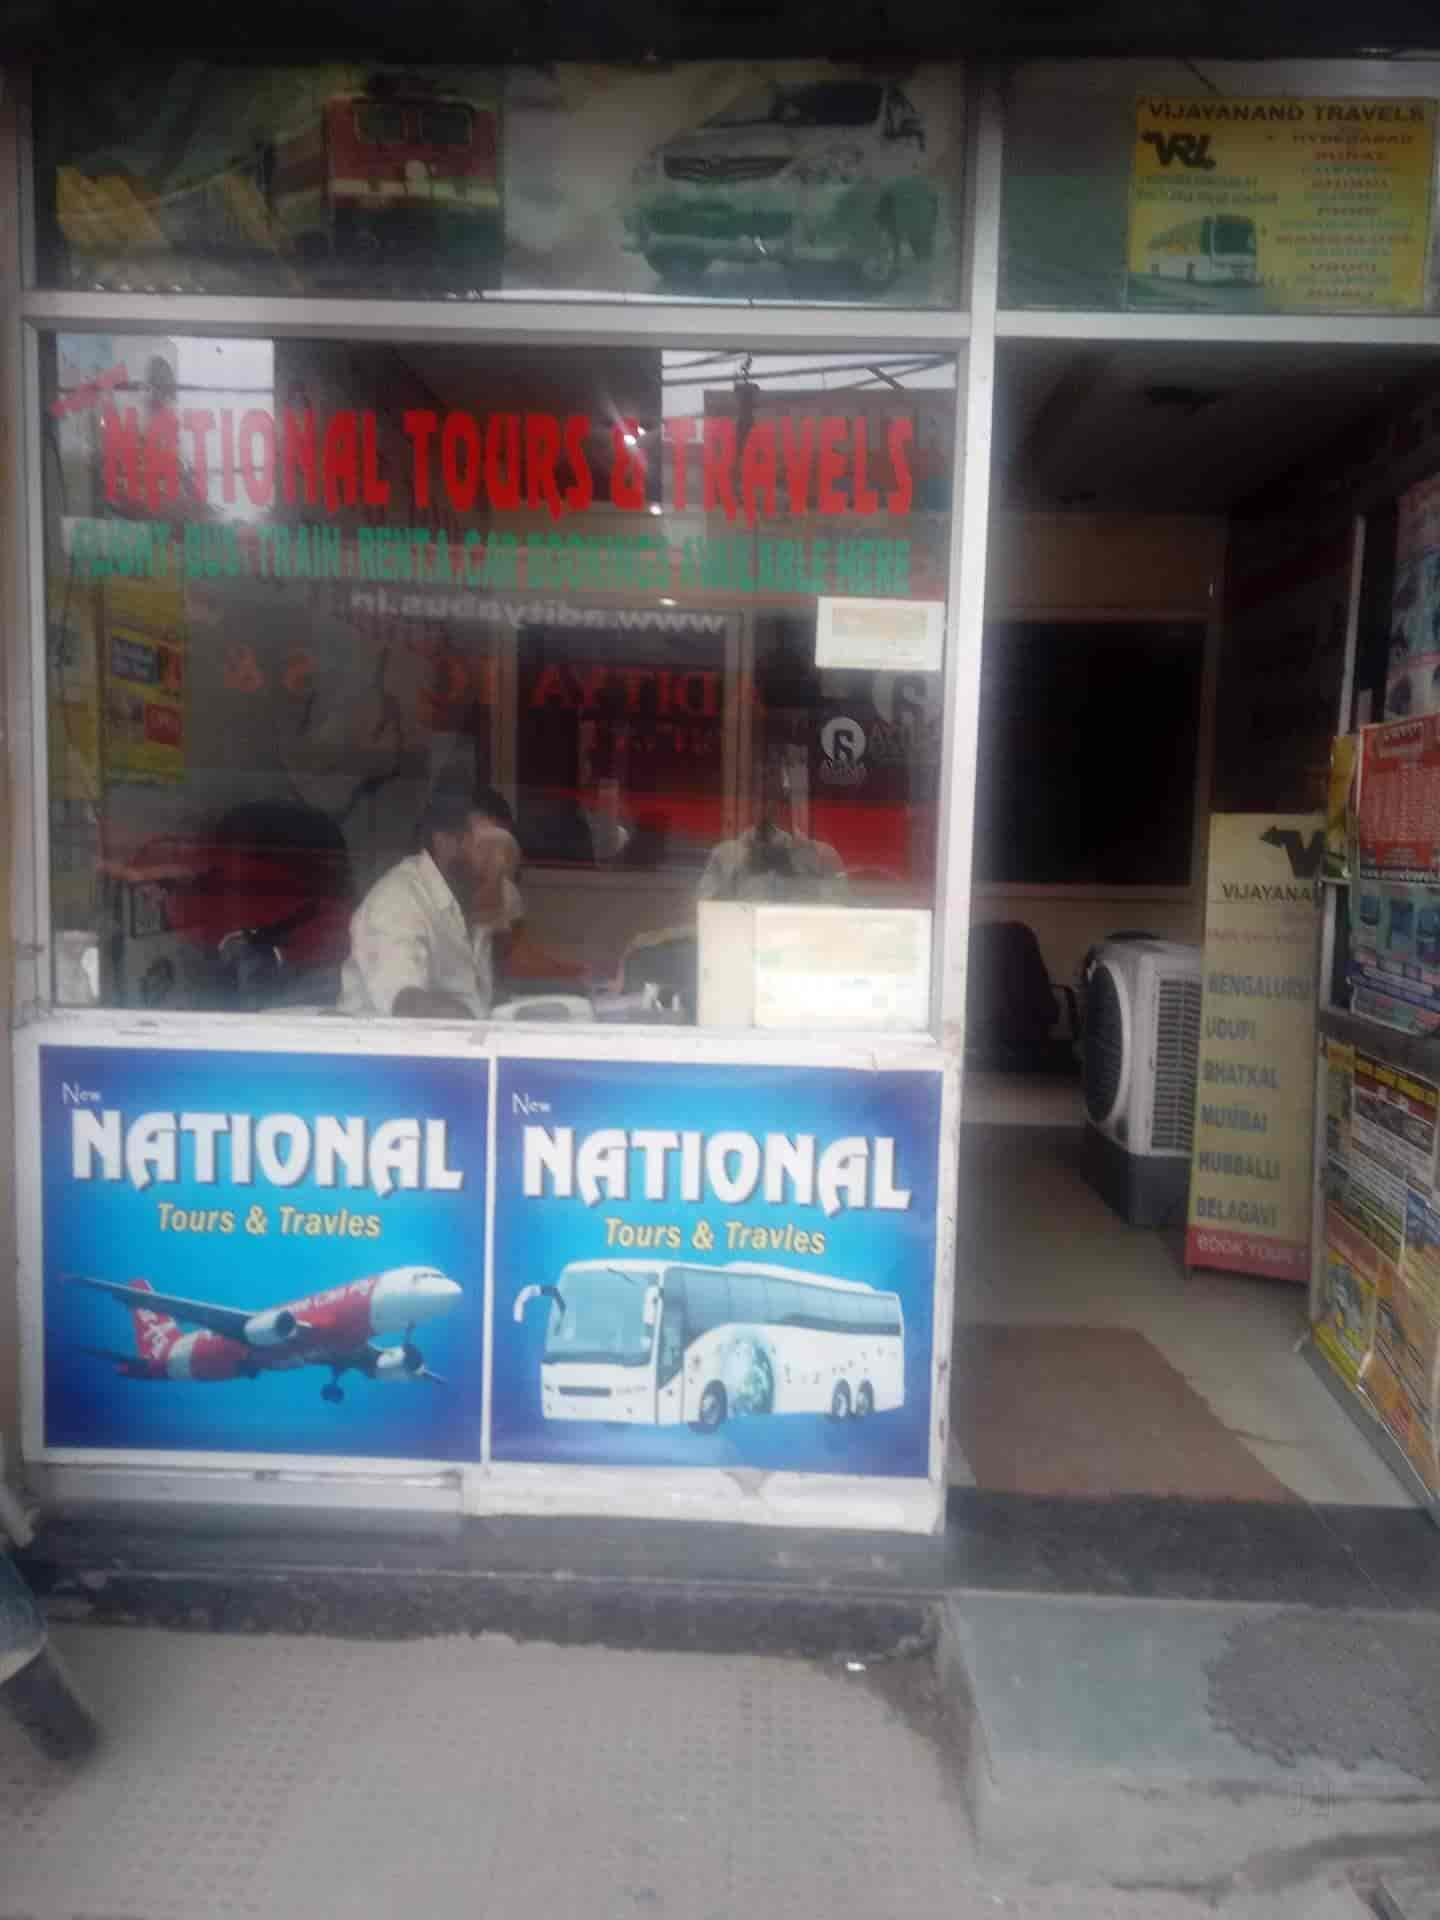 New National Tours & Travels, Kondapur - Air Ticketing